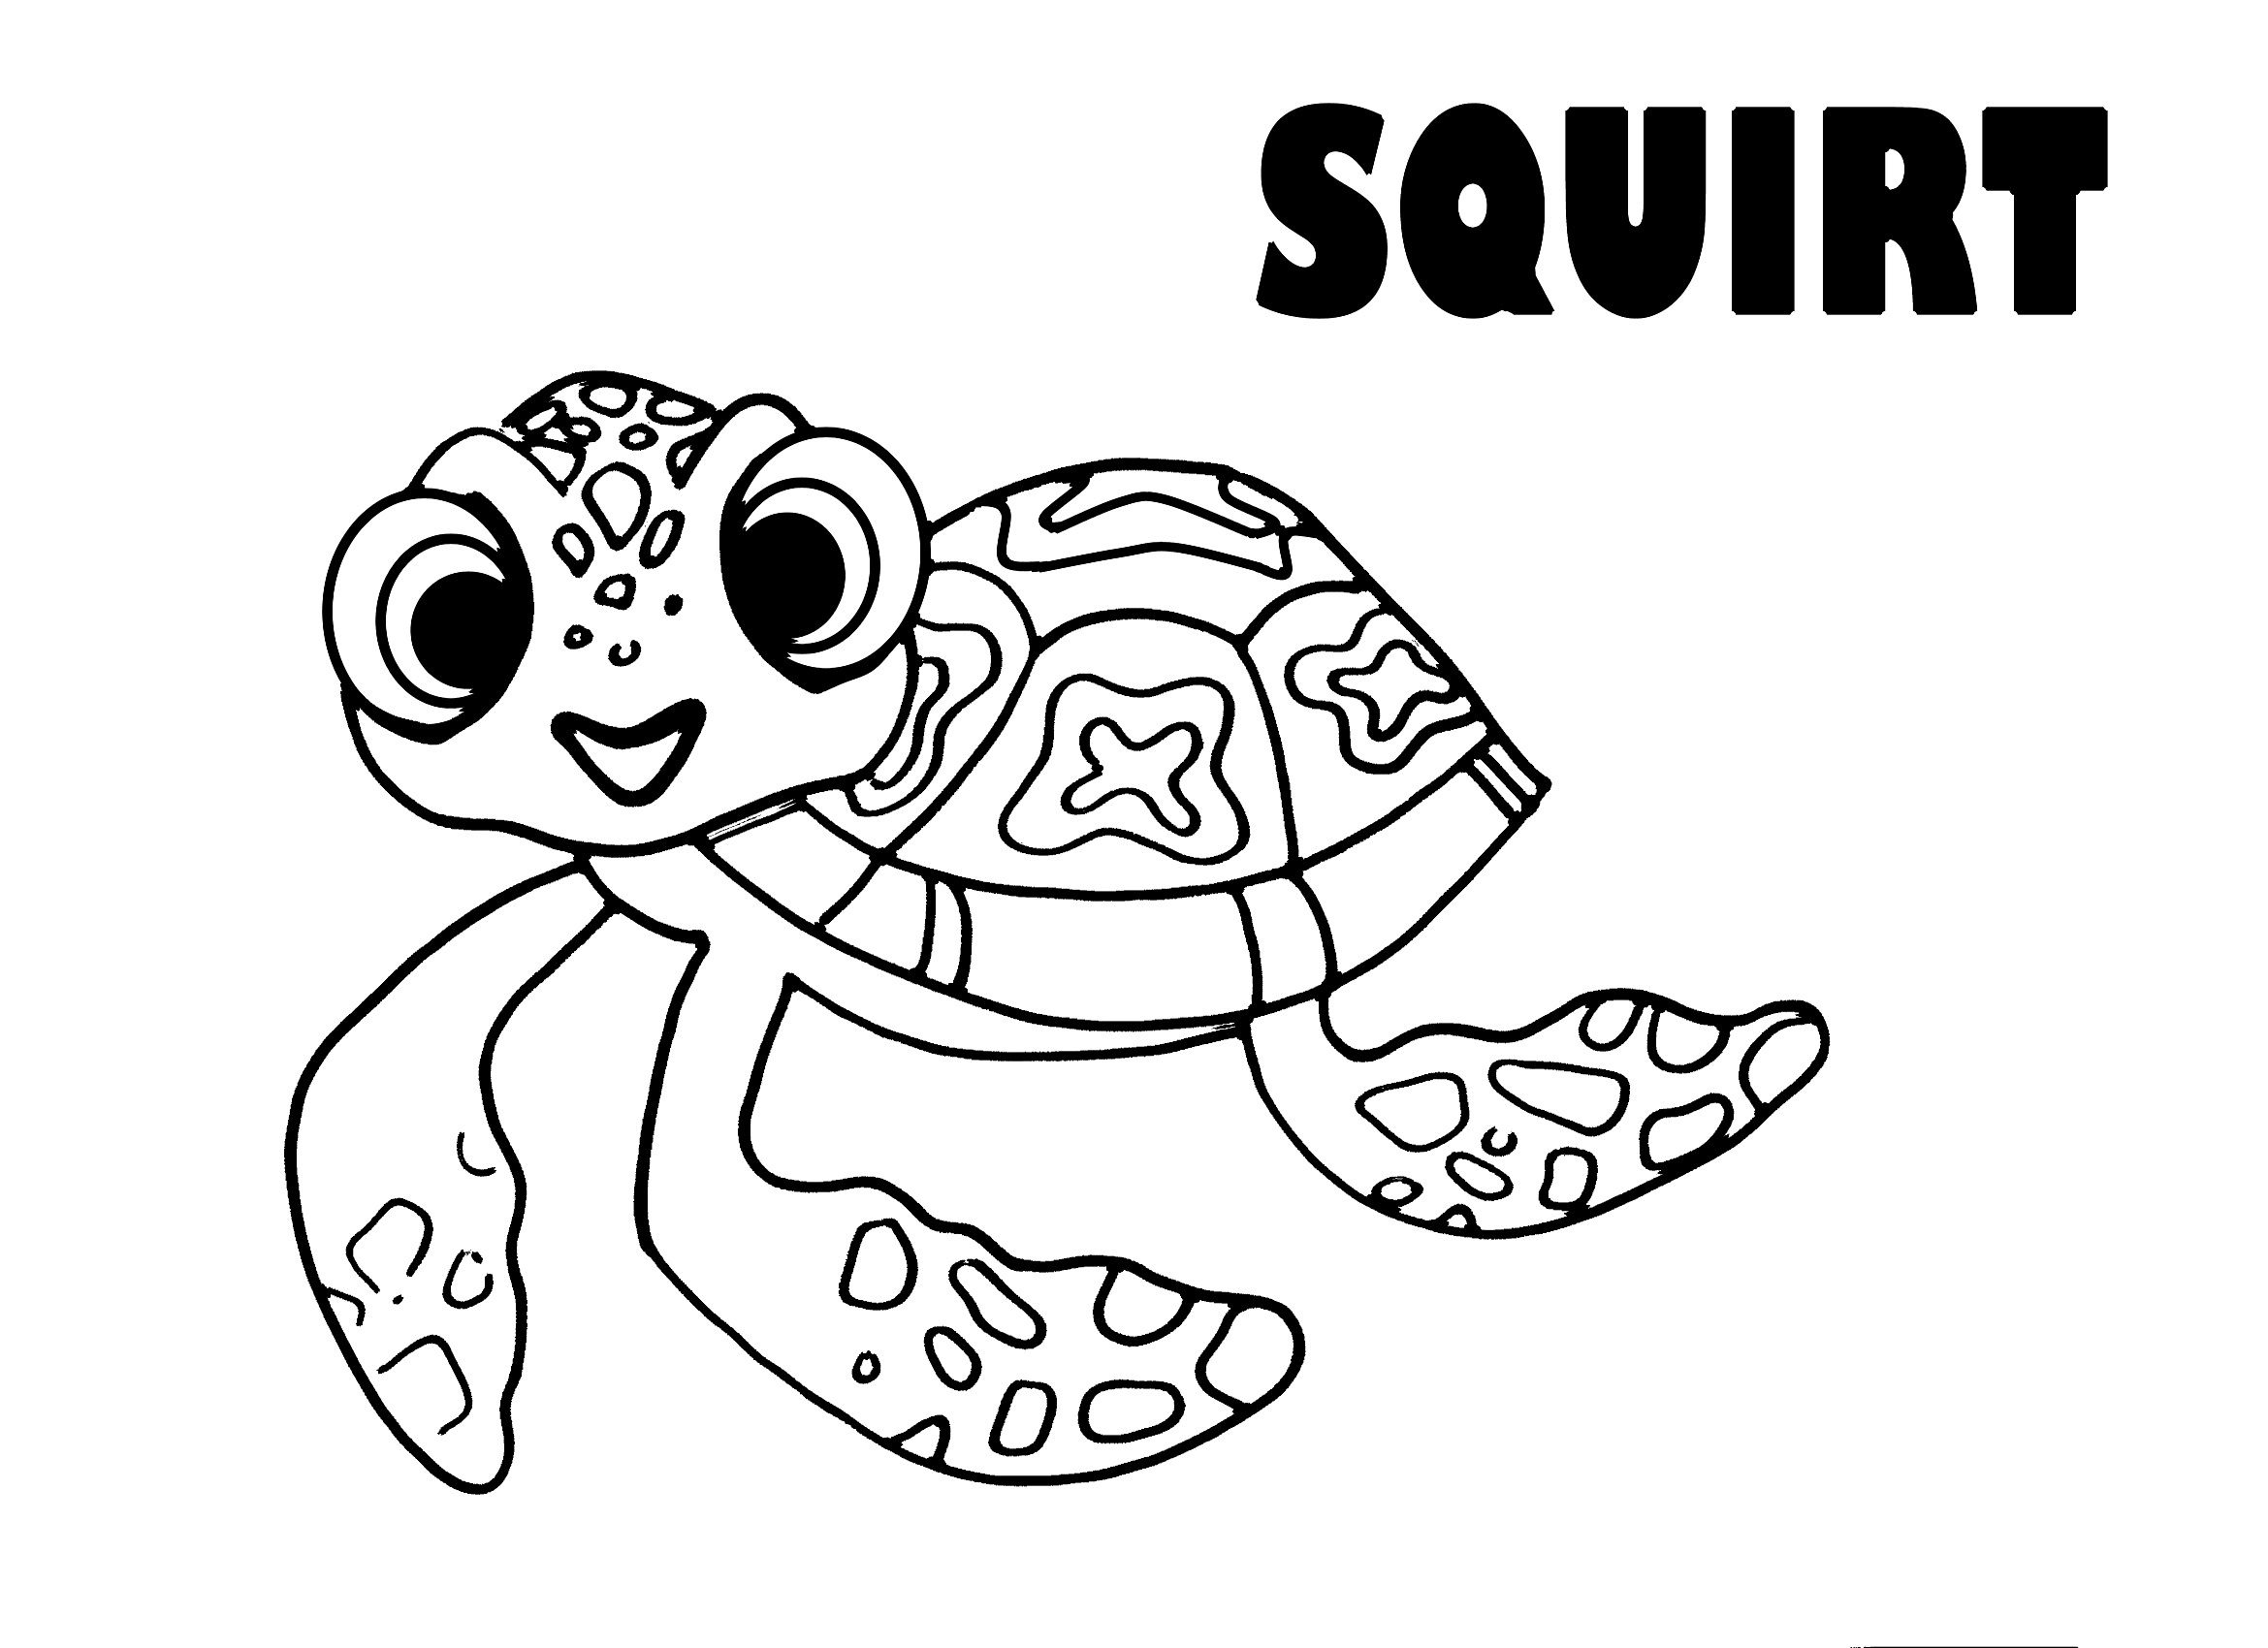 Finding Nemo Coloring Pages - Bing Images | Finding nemo ...